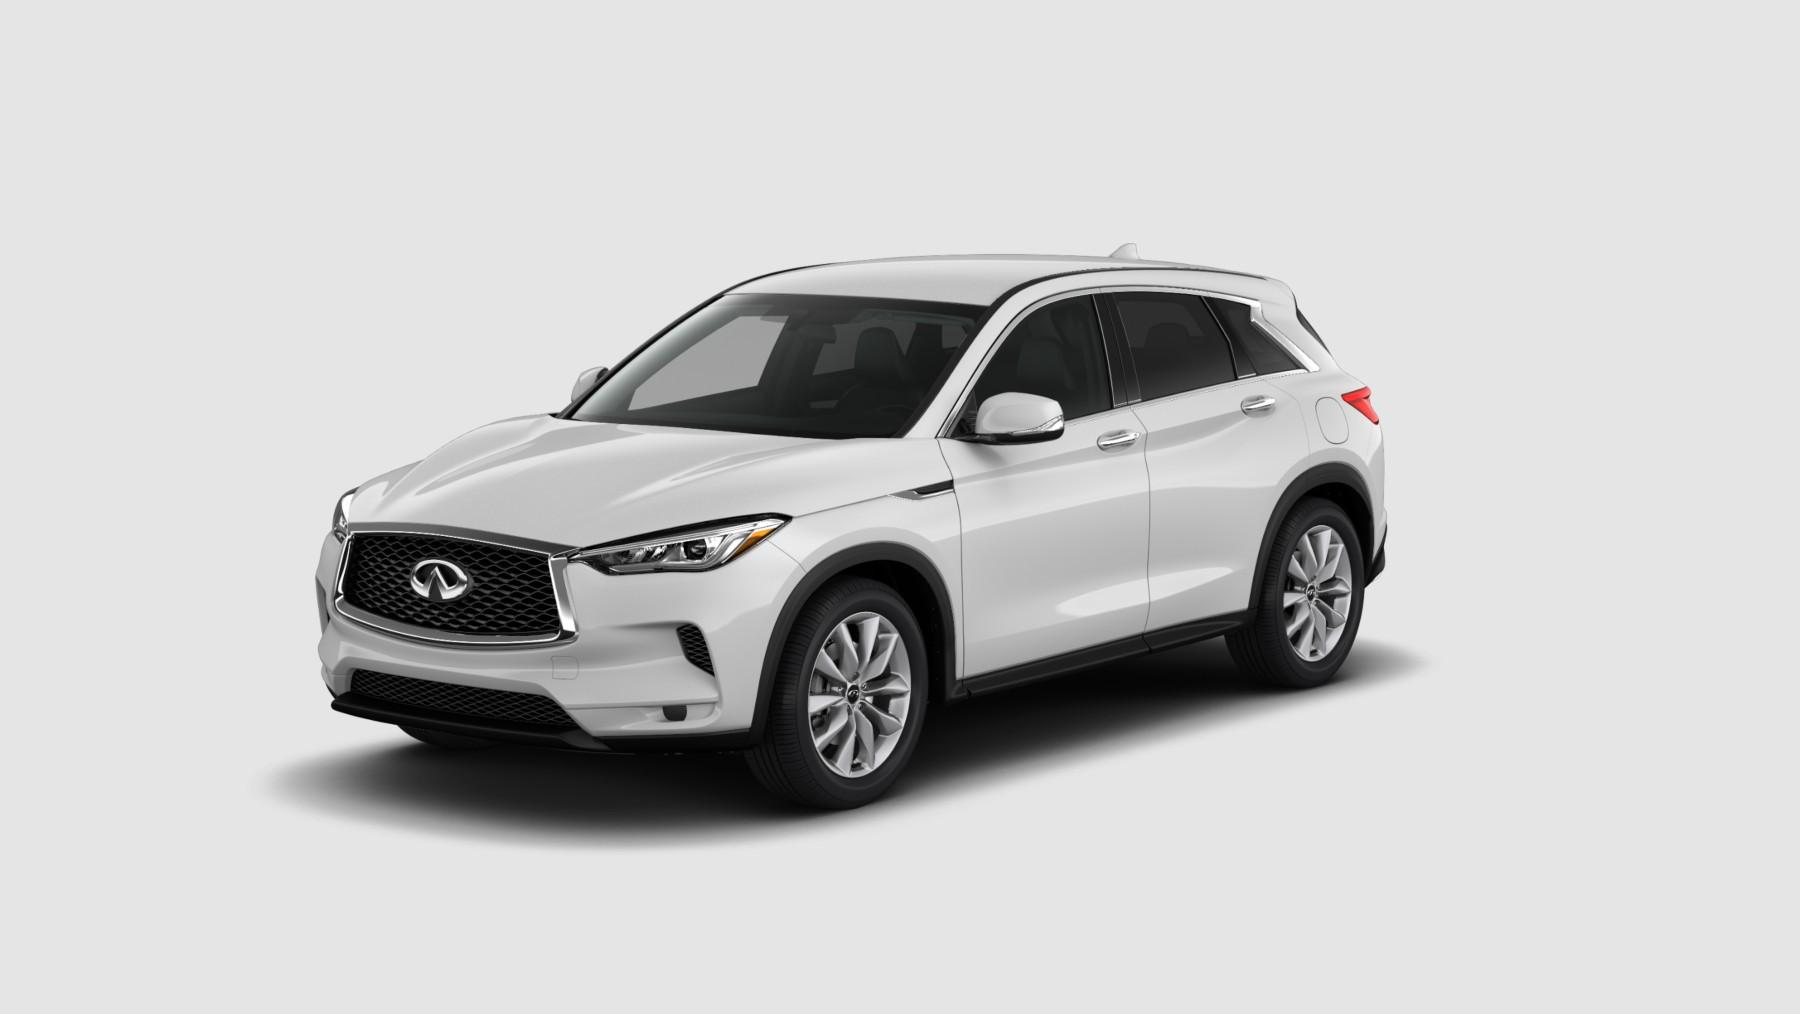 2019 INFINITI QX50 Vehicle Photo in Houston, TX 77090